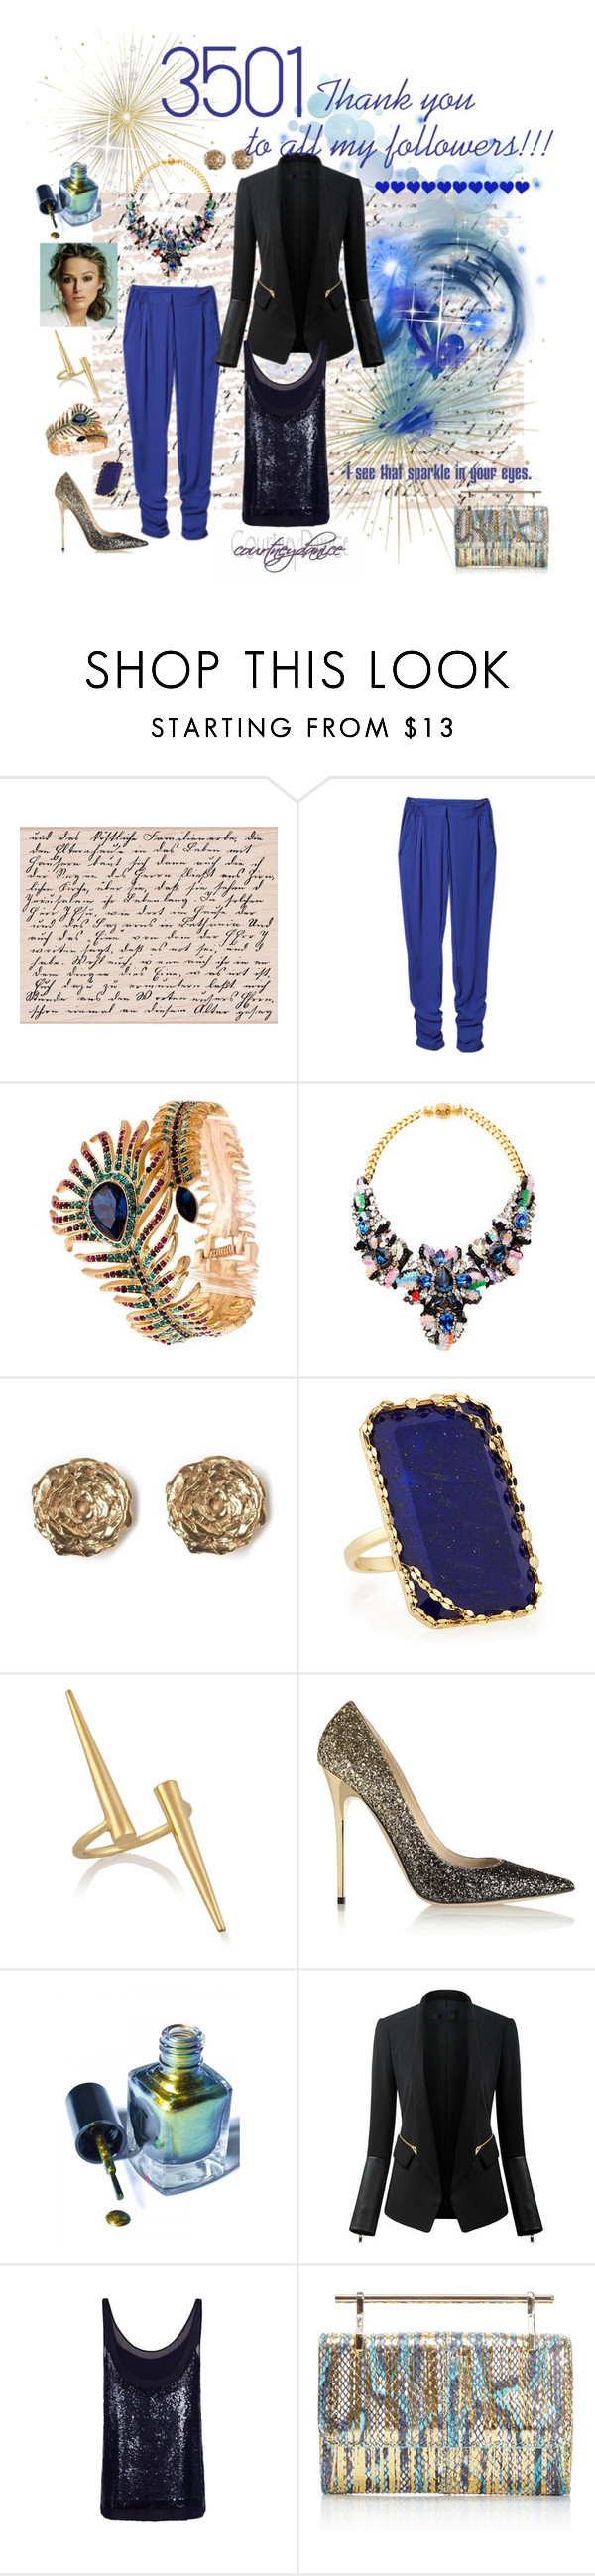 """3501"" by courtneydanice ❤ liked on Polyvore featuring Shourouk, LeiVanKash, Lana, Jennifer Fisher, Jimmy Choo, Cirque Colors, Chicsense, AllSaints and M2Malletier"